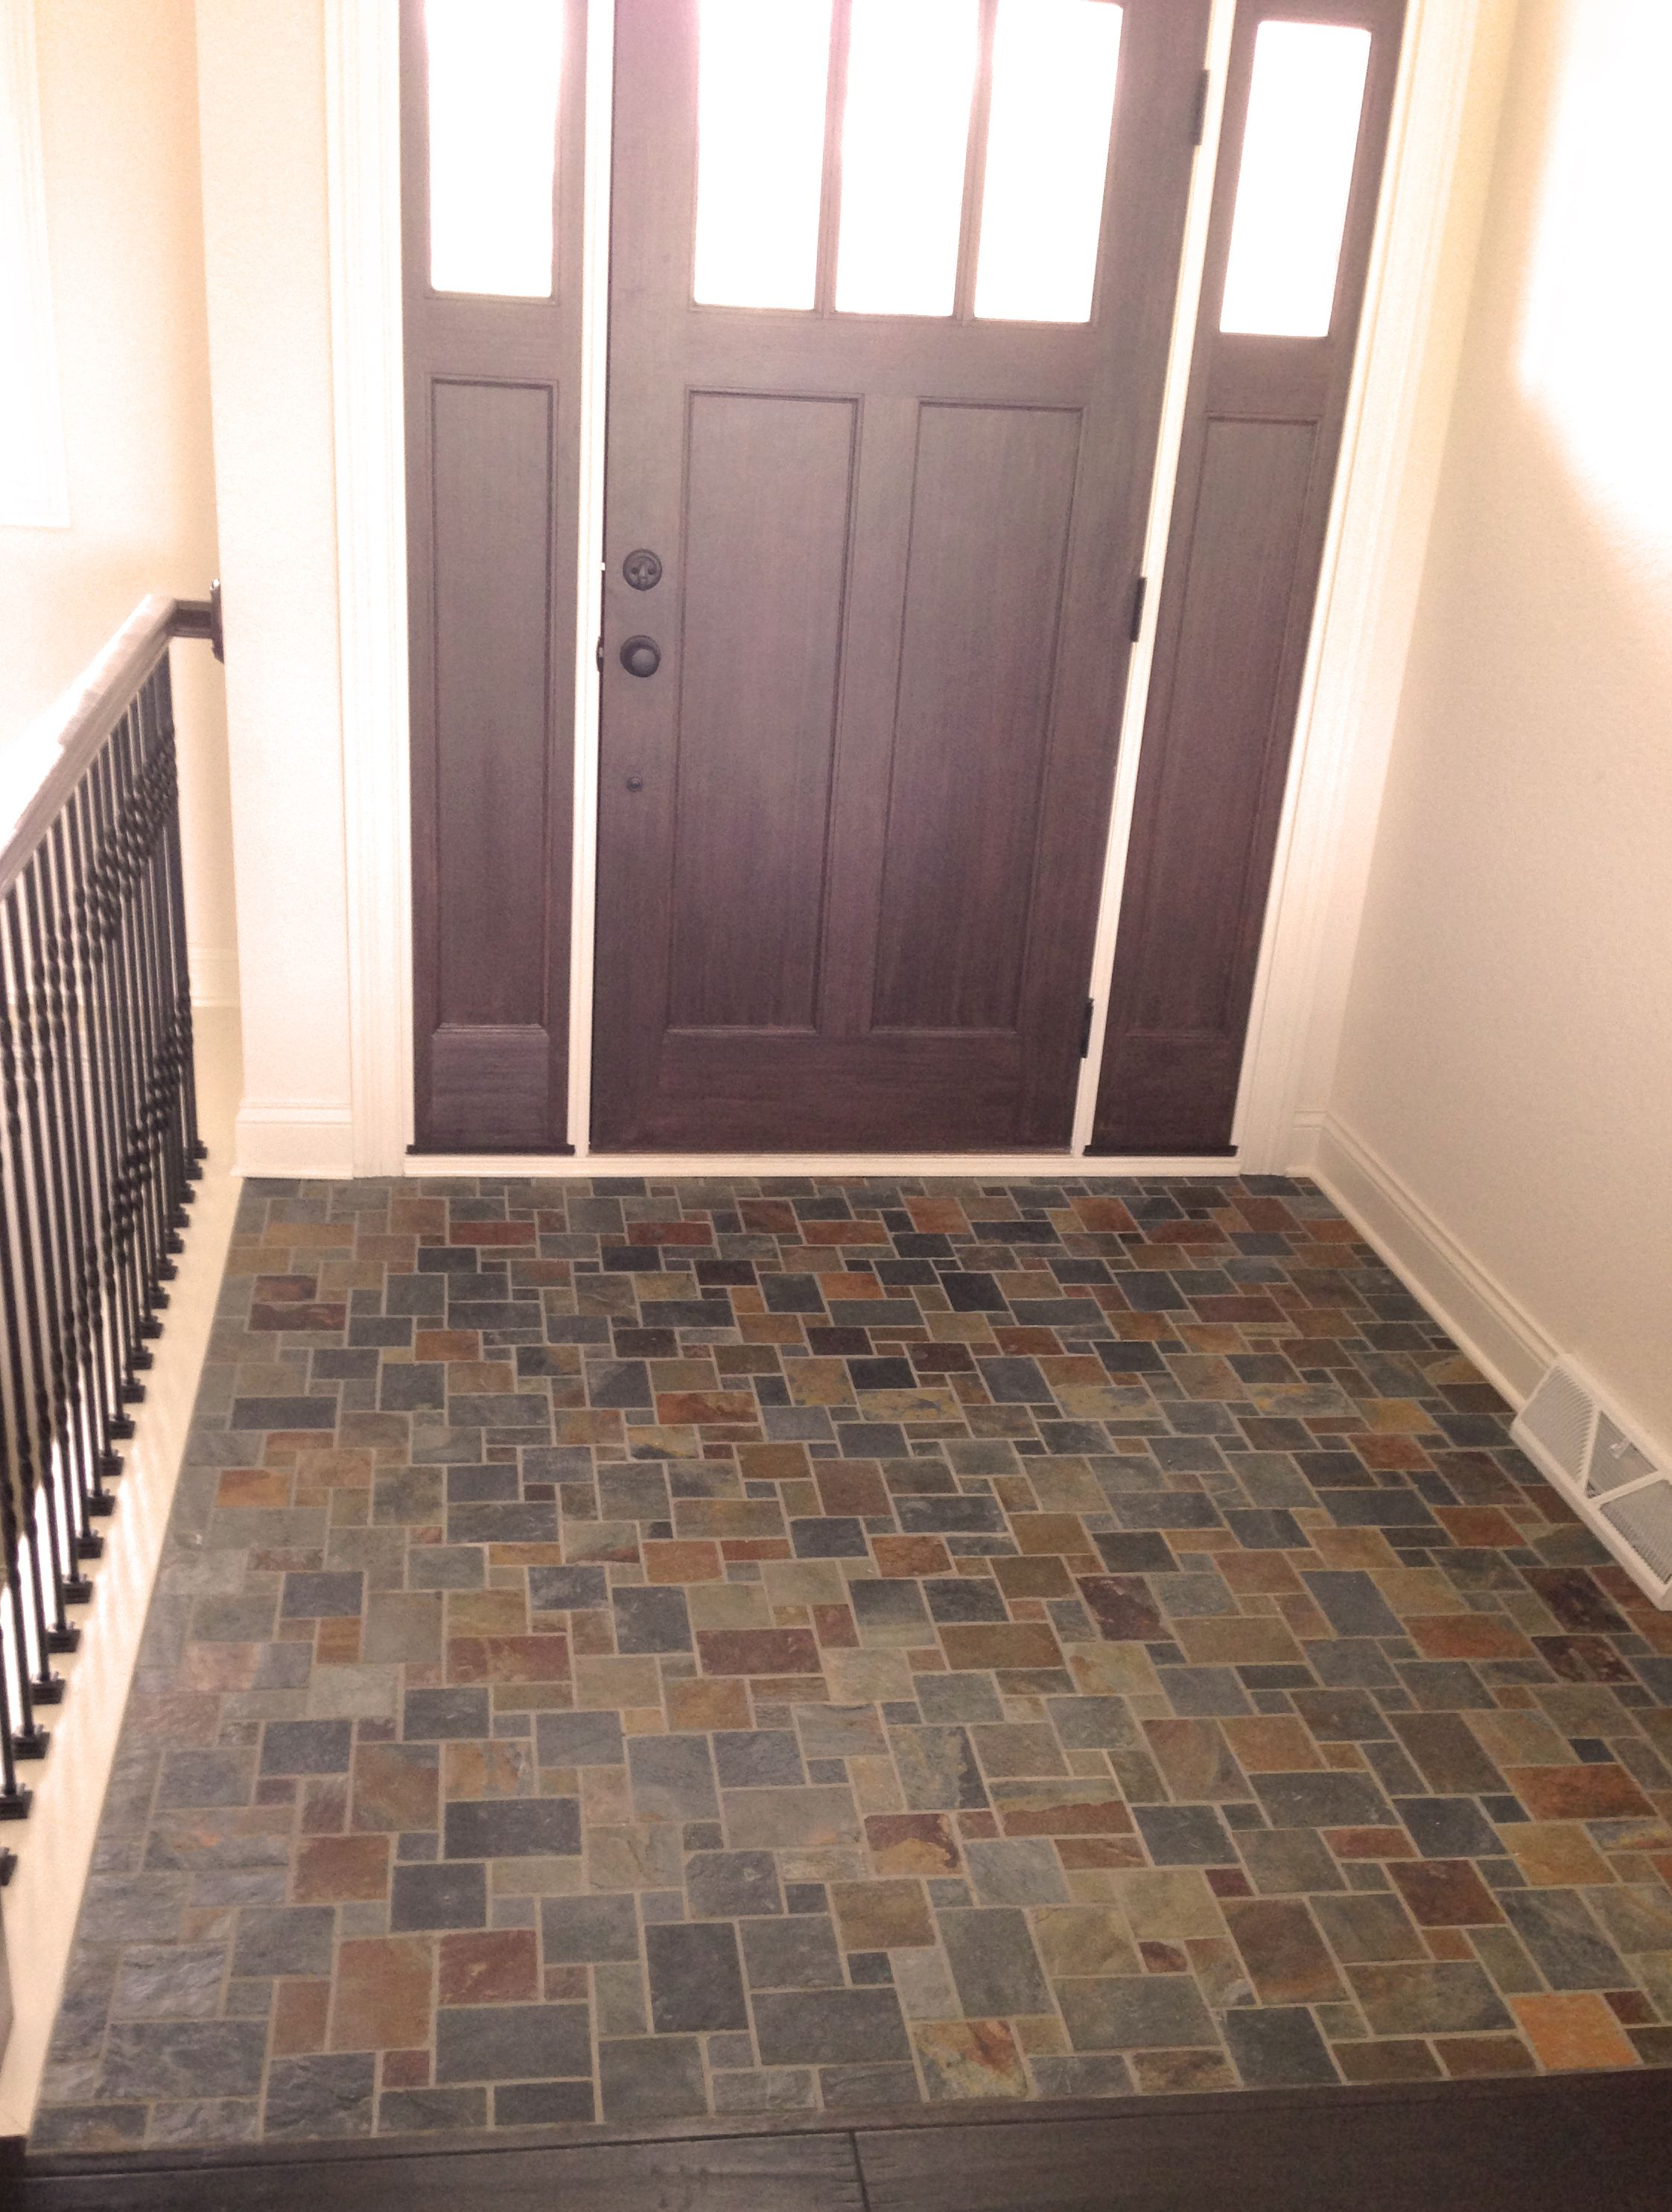 Using a versailles pattern for entry tile offers a nice using a versailles pattern for entry tile offers a nice distraction to the small area that dailygadgetfo Gallery